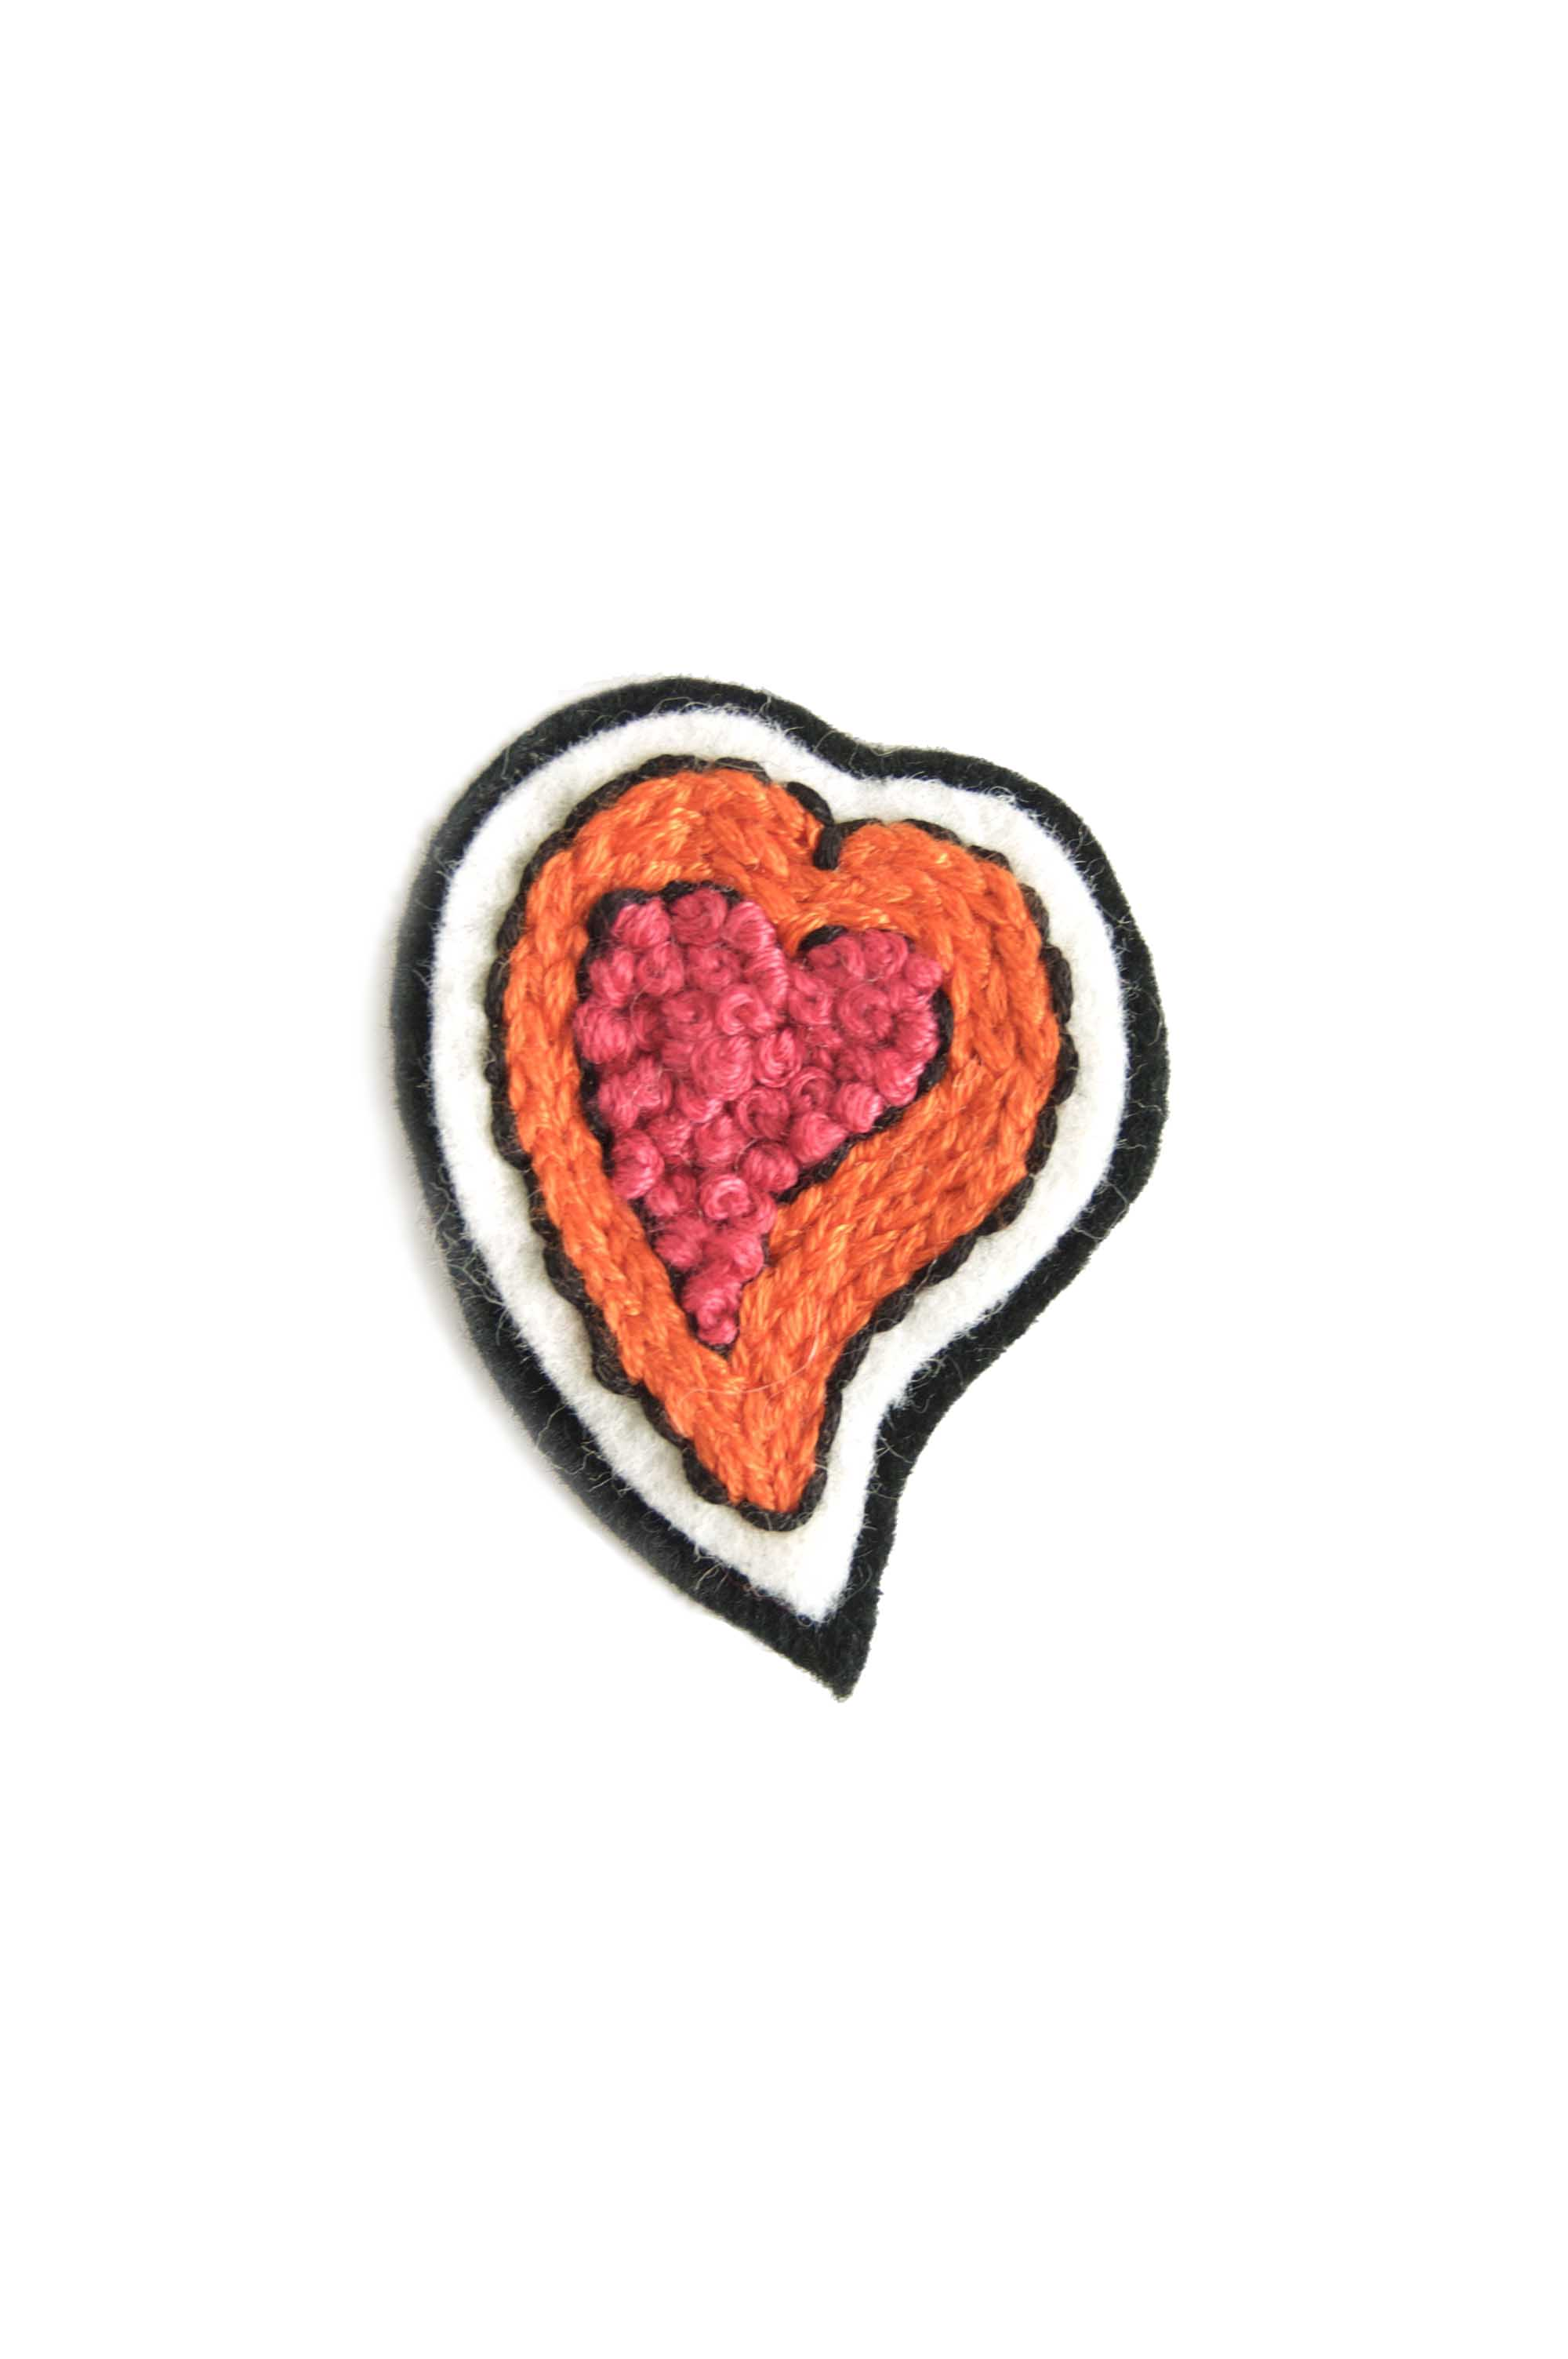 Embroidered Heart Patch - Free Pattern pdf